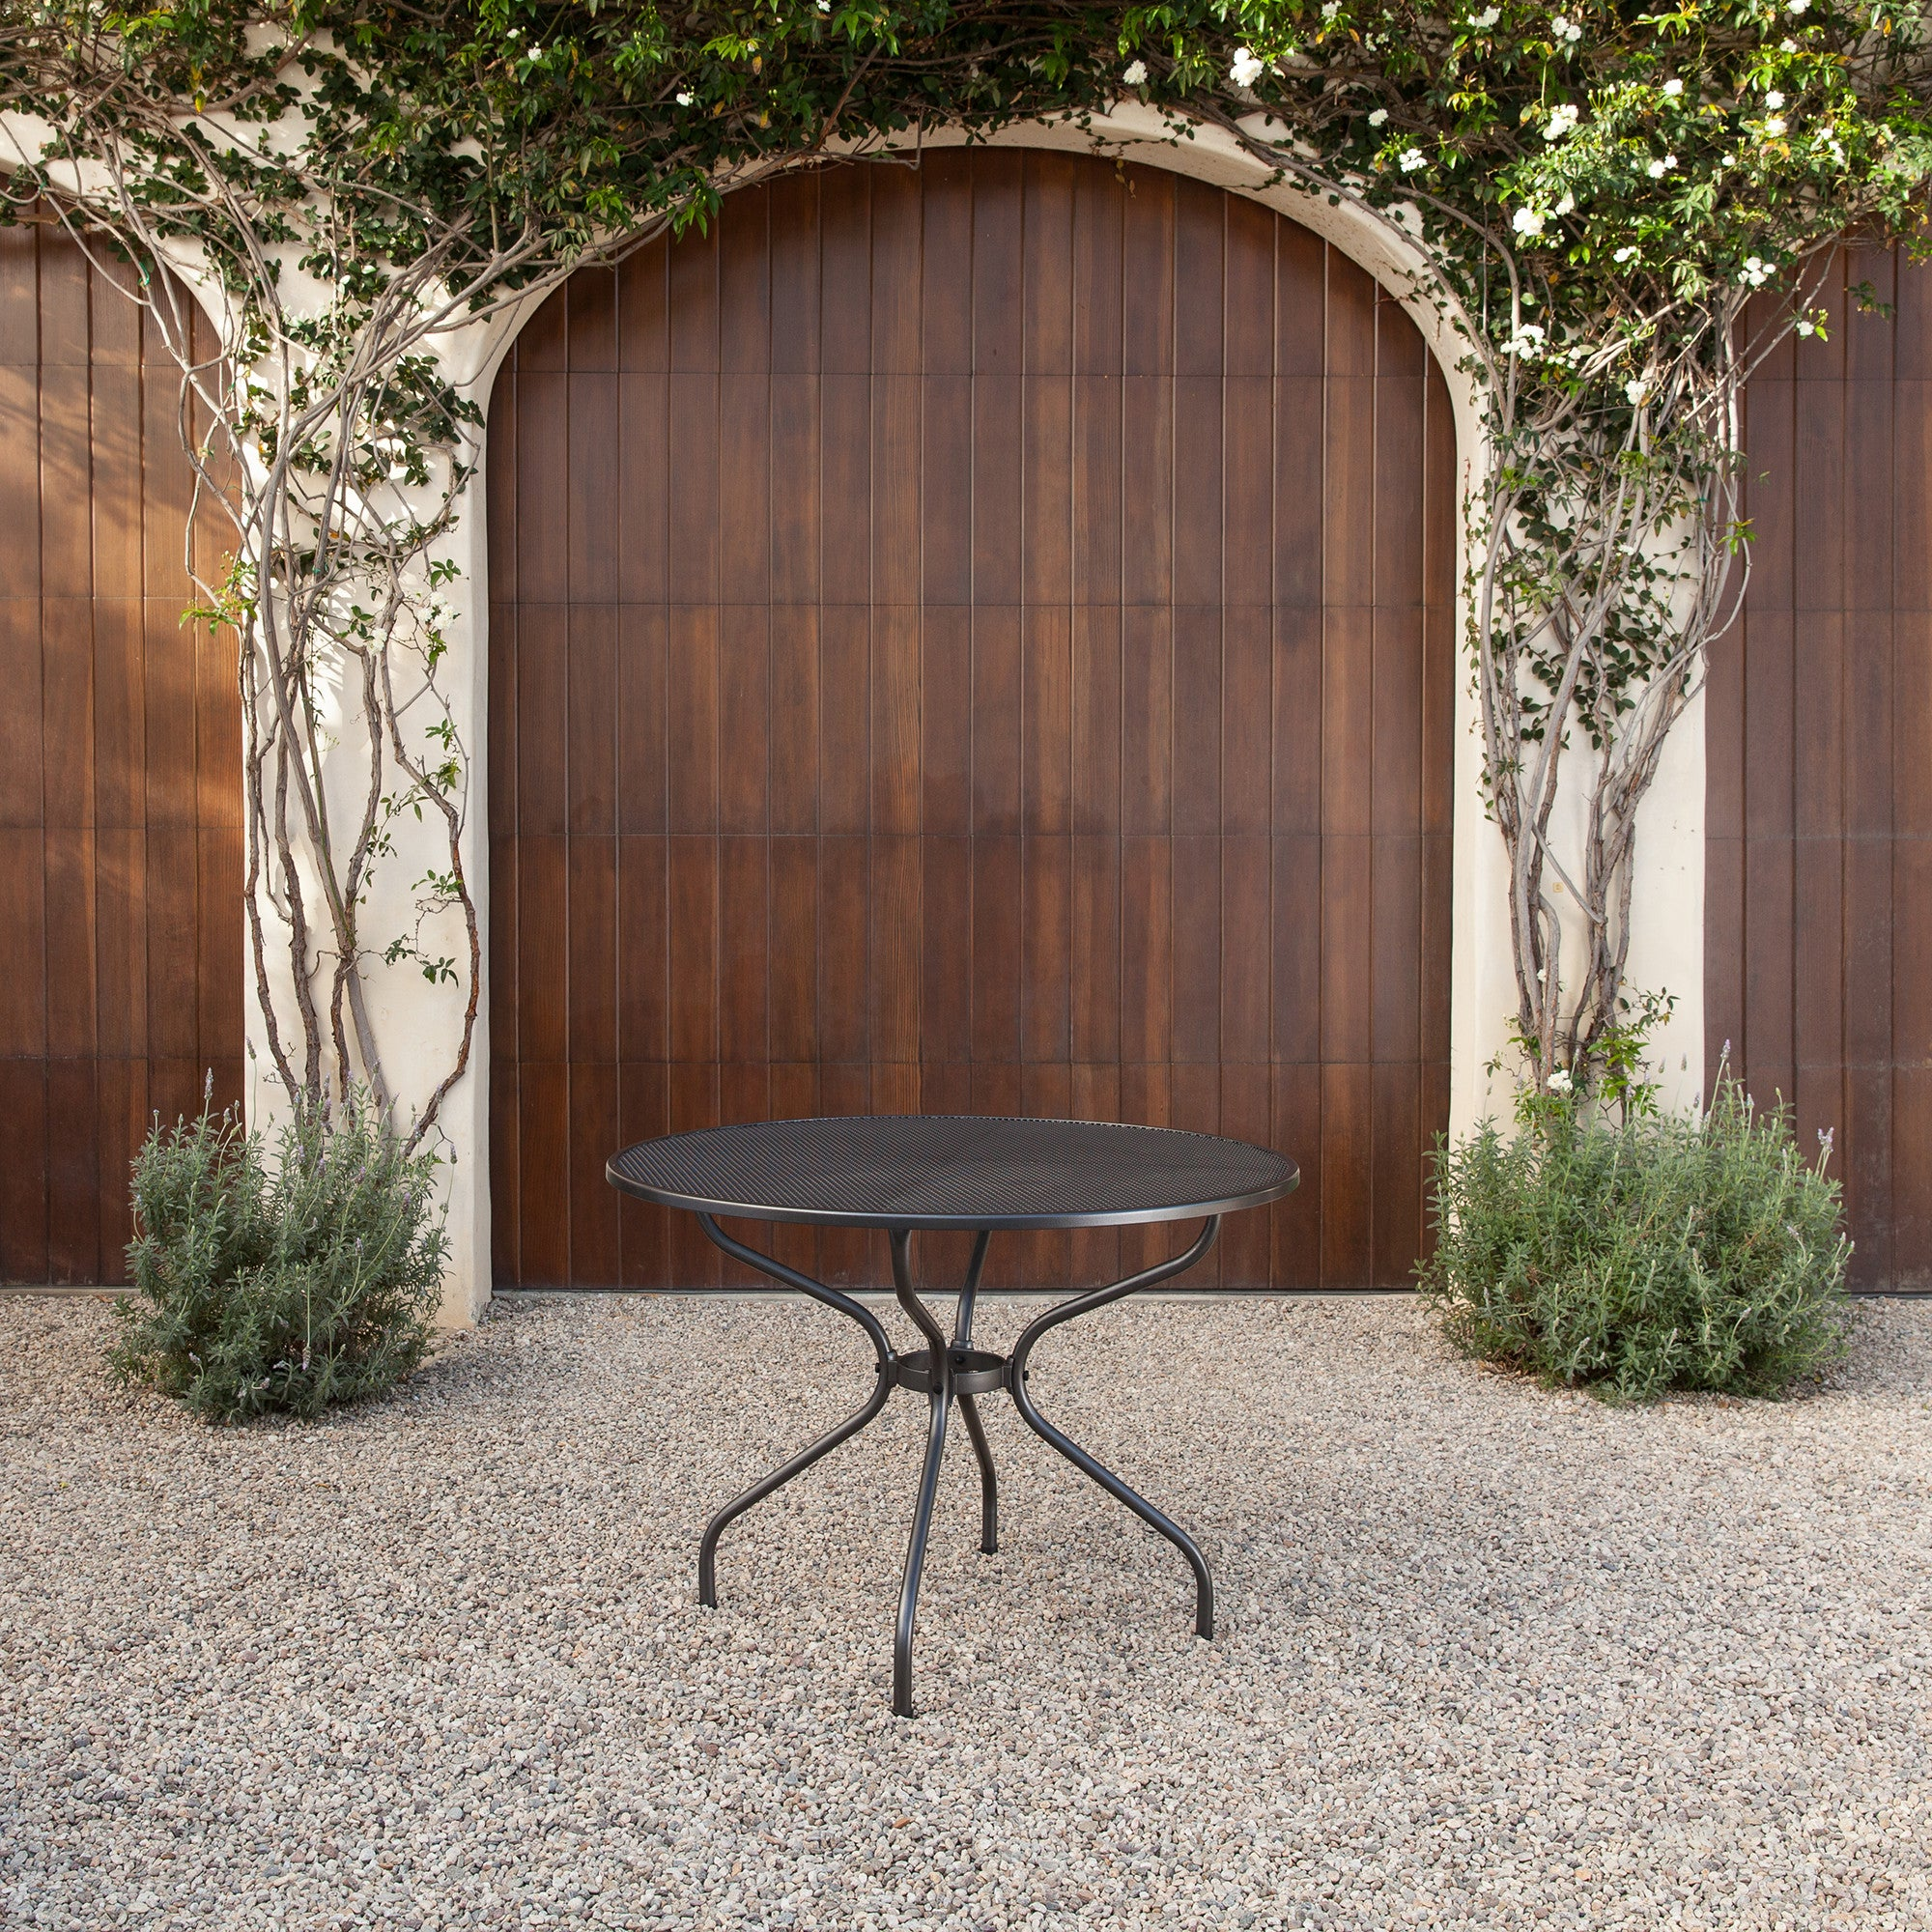 Ludwig Patio Round Dining Table  seats four   Metal Mesh Top. Royal Garden Patio Furniture   Your Outdoor Furniture Store